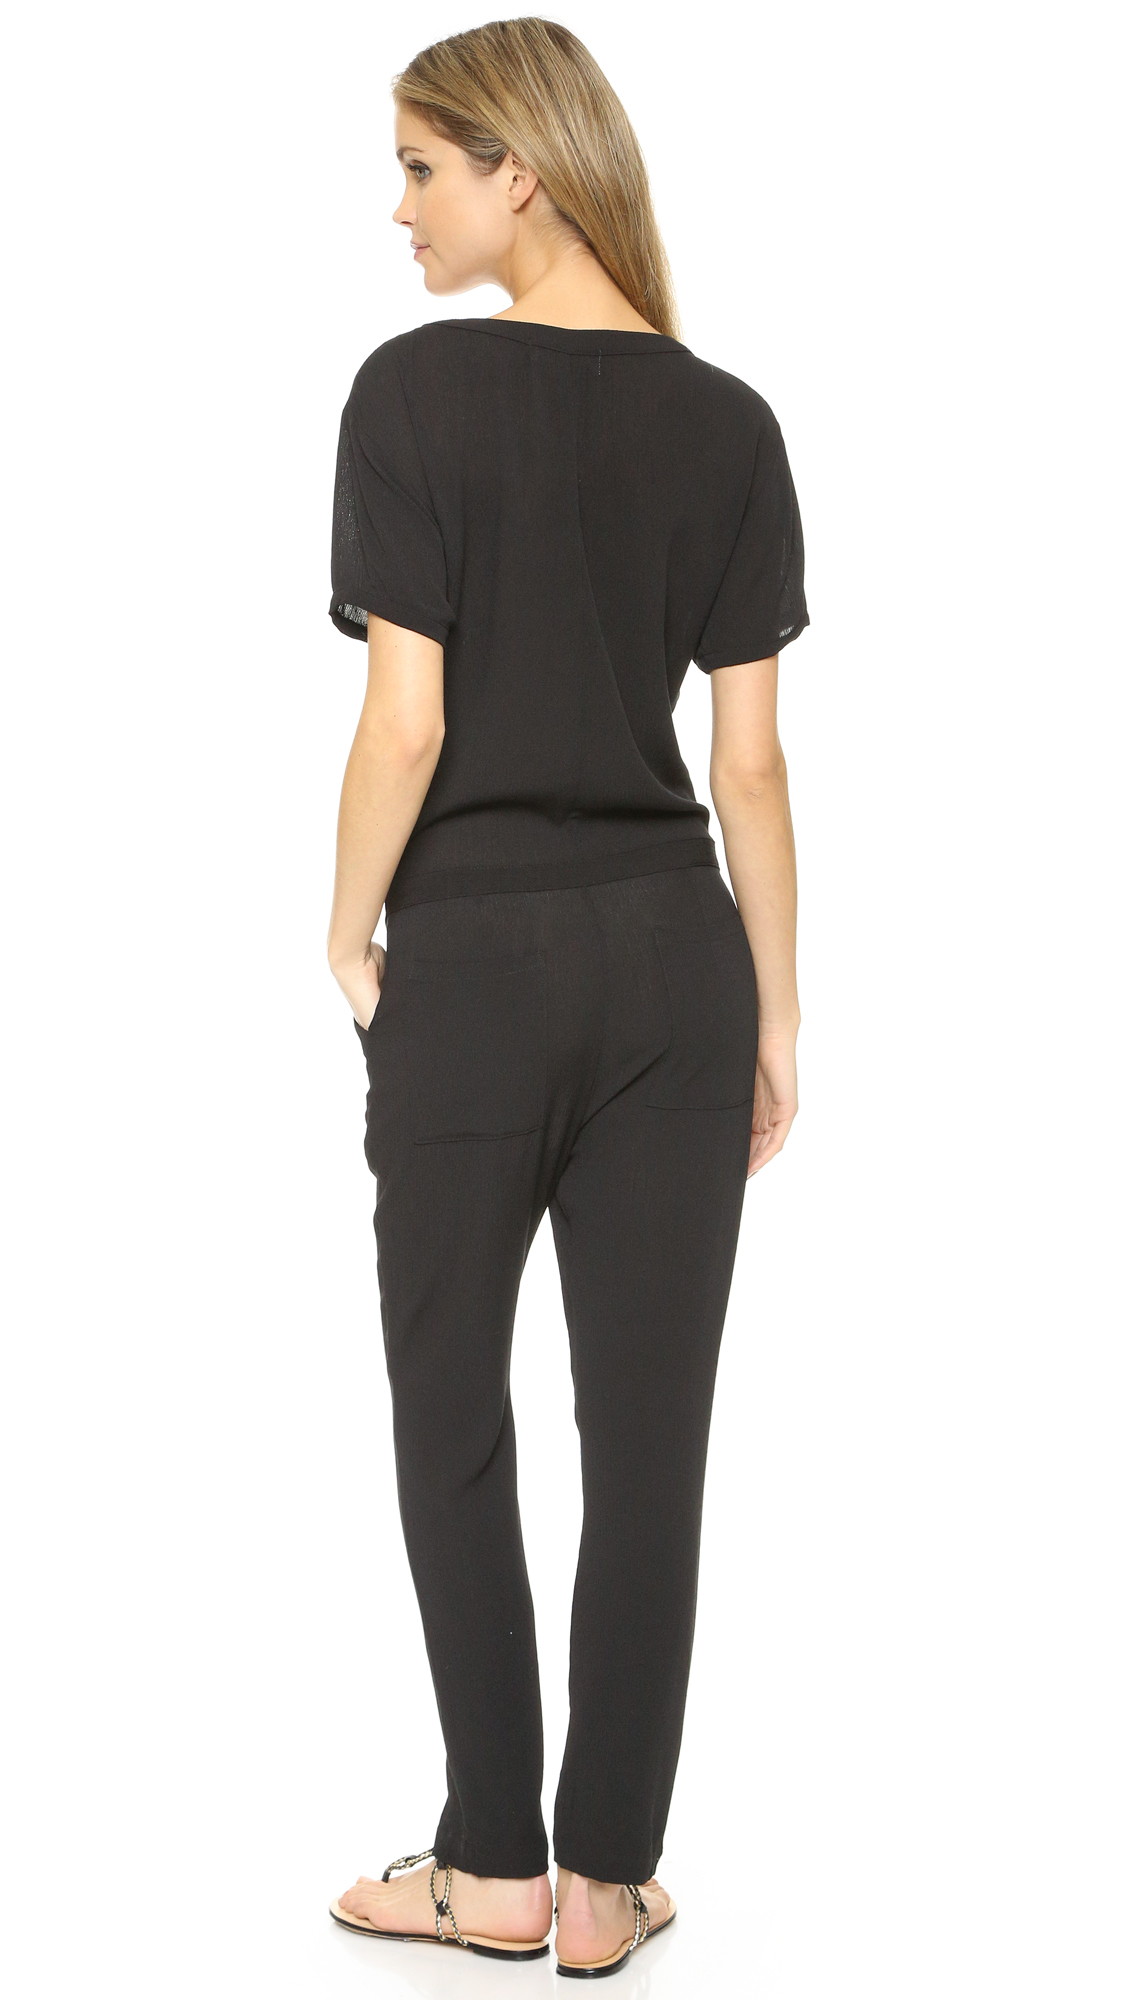 49fdbcf54173 Wildfox Solid Black Travel Jumpsuit